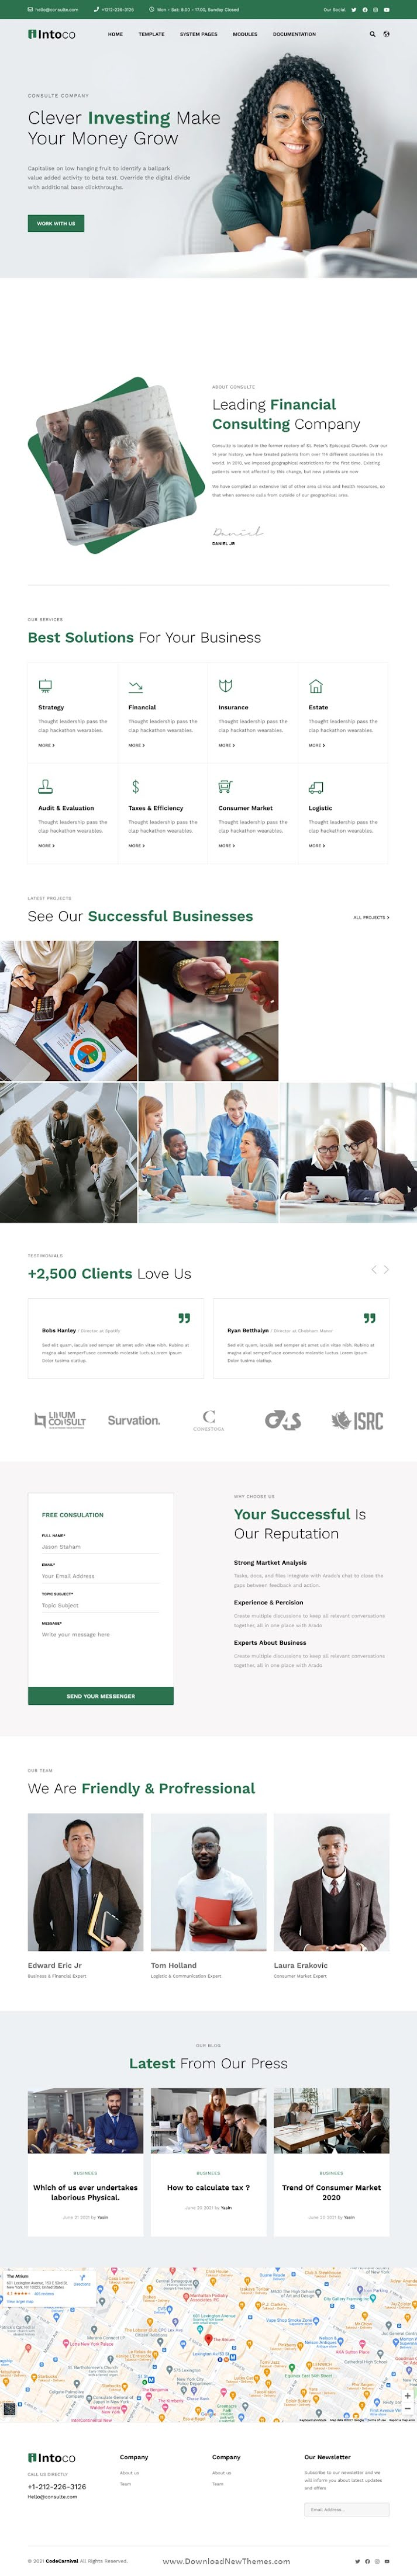 Intoco - Investment Company HubSpot Theme